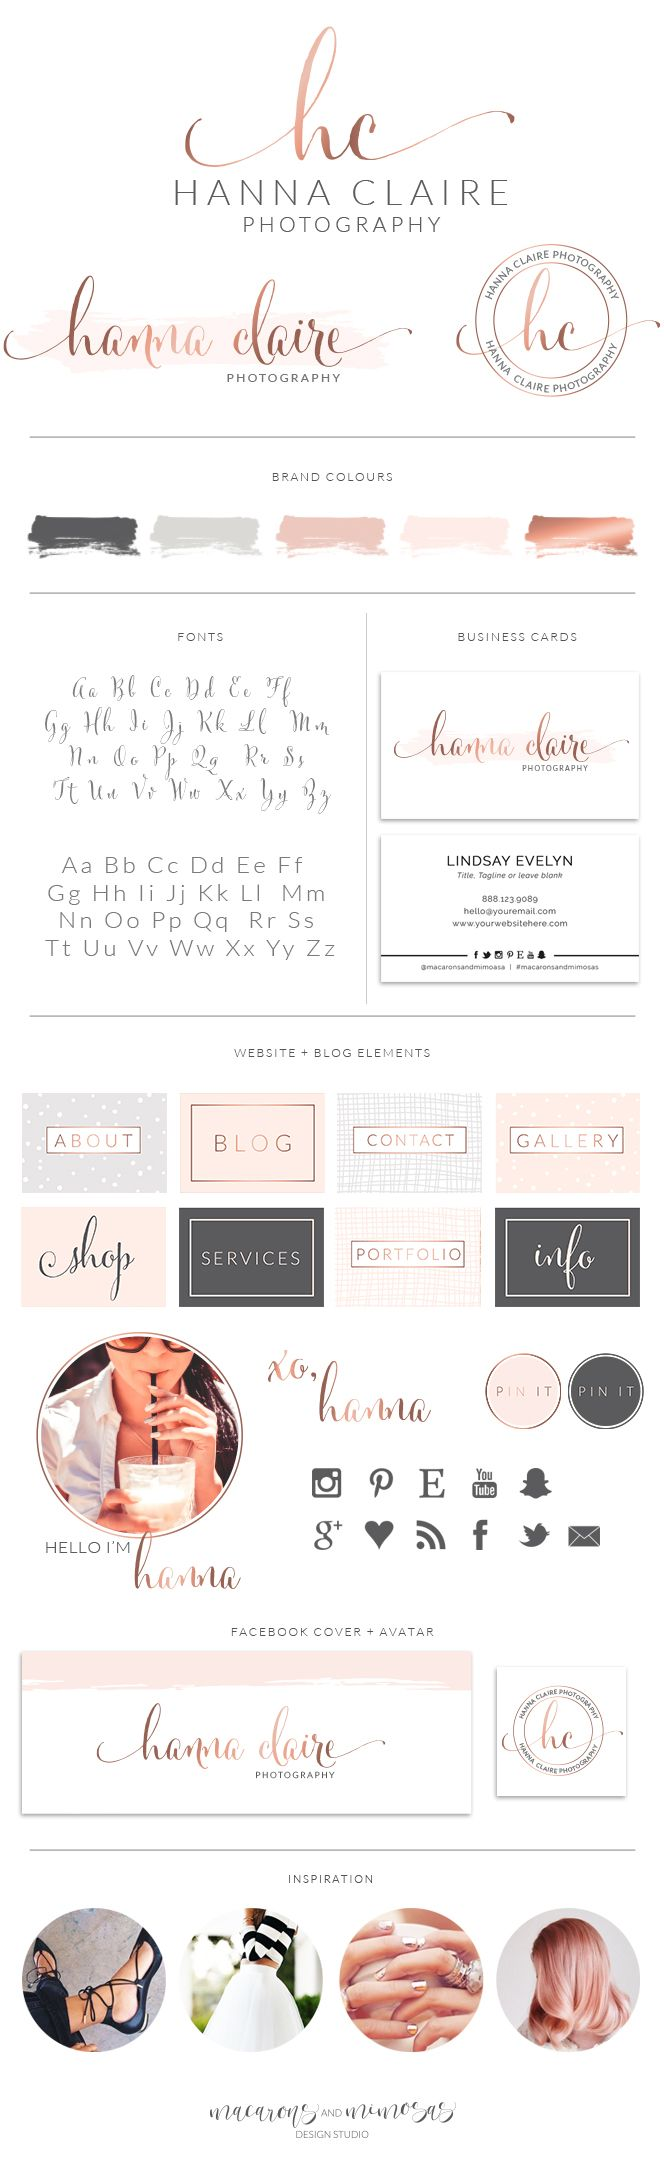 Design Studio, Business Branding, Brand Board, Branding Kit Logo Design, Rose Gold Logo, Blush Pink Color Scheme, watercolor Calligraphy Watercolor, Premade Submark Watermark Stamp, Blogger Photography